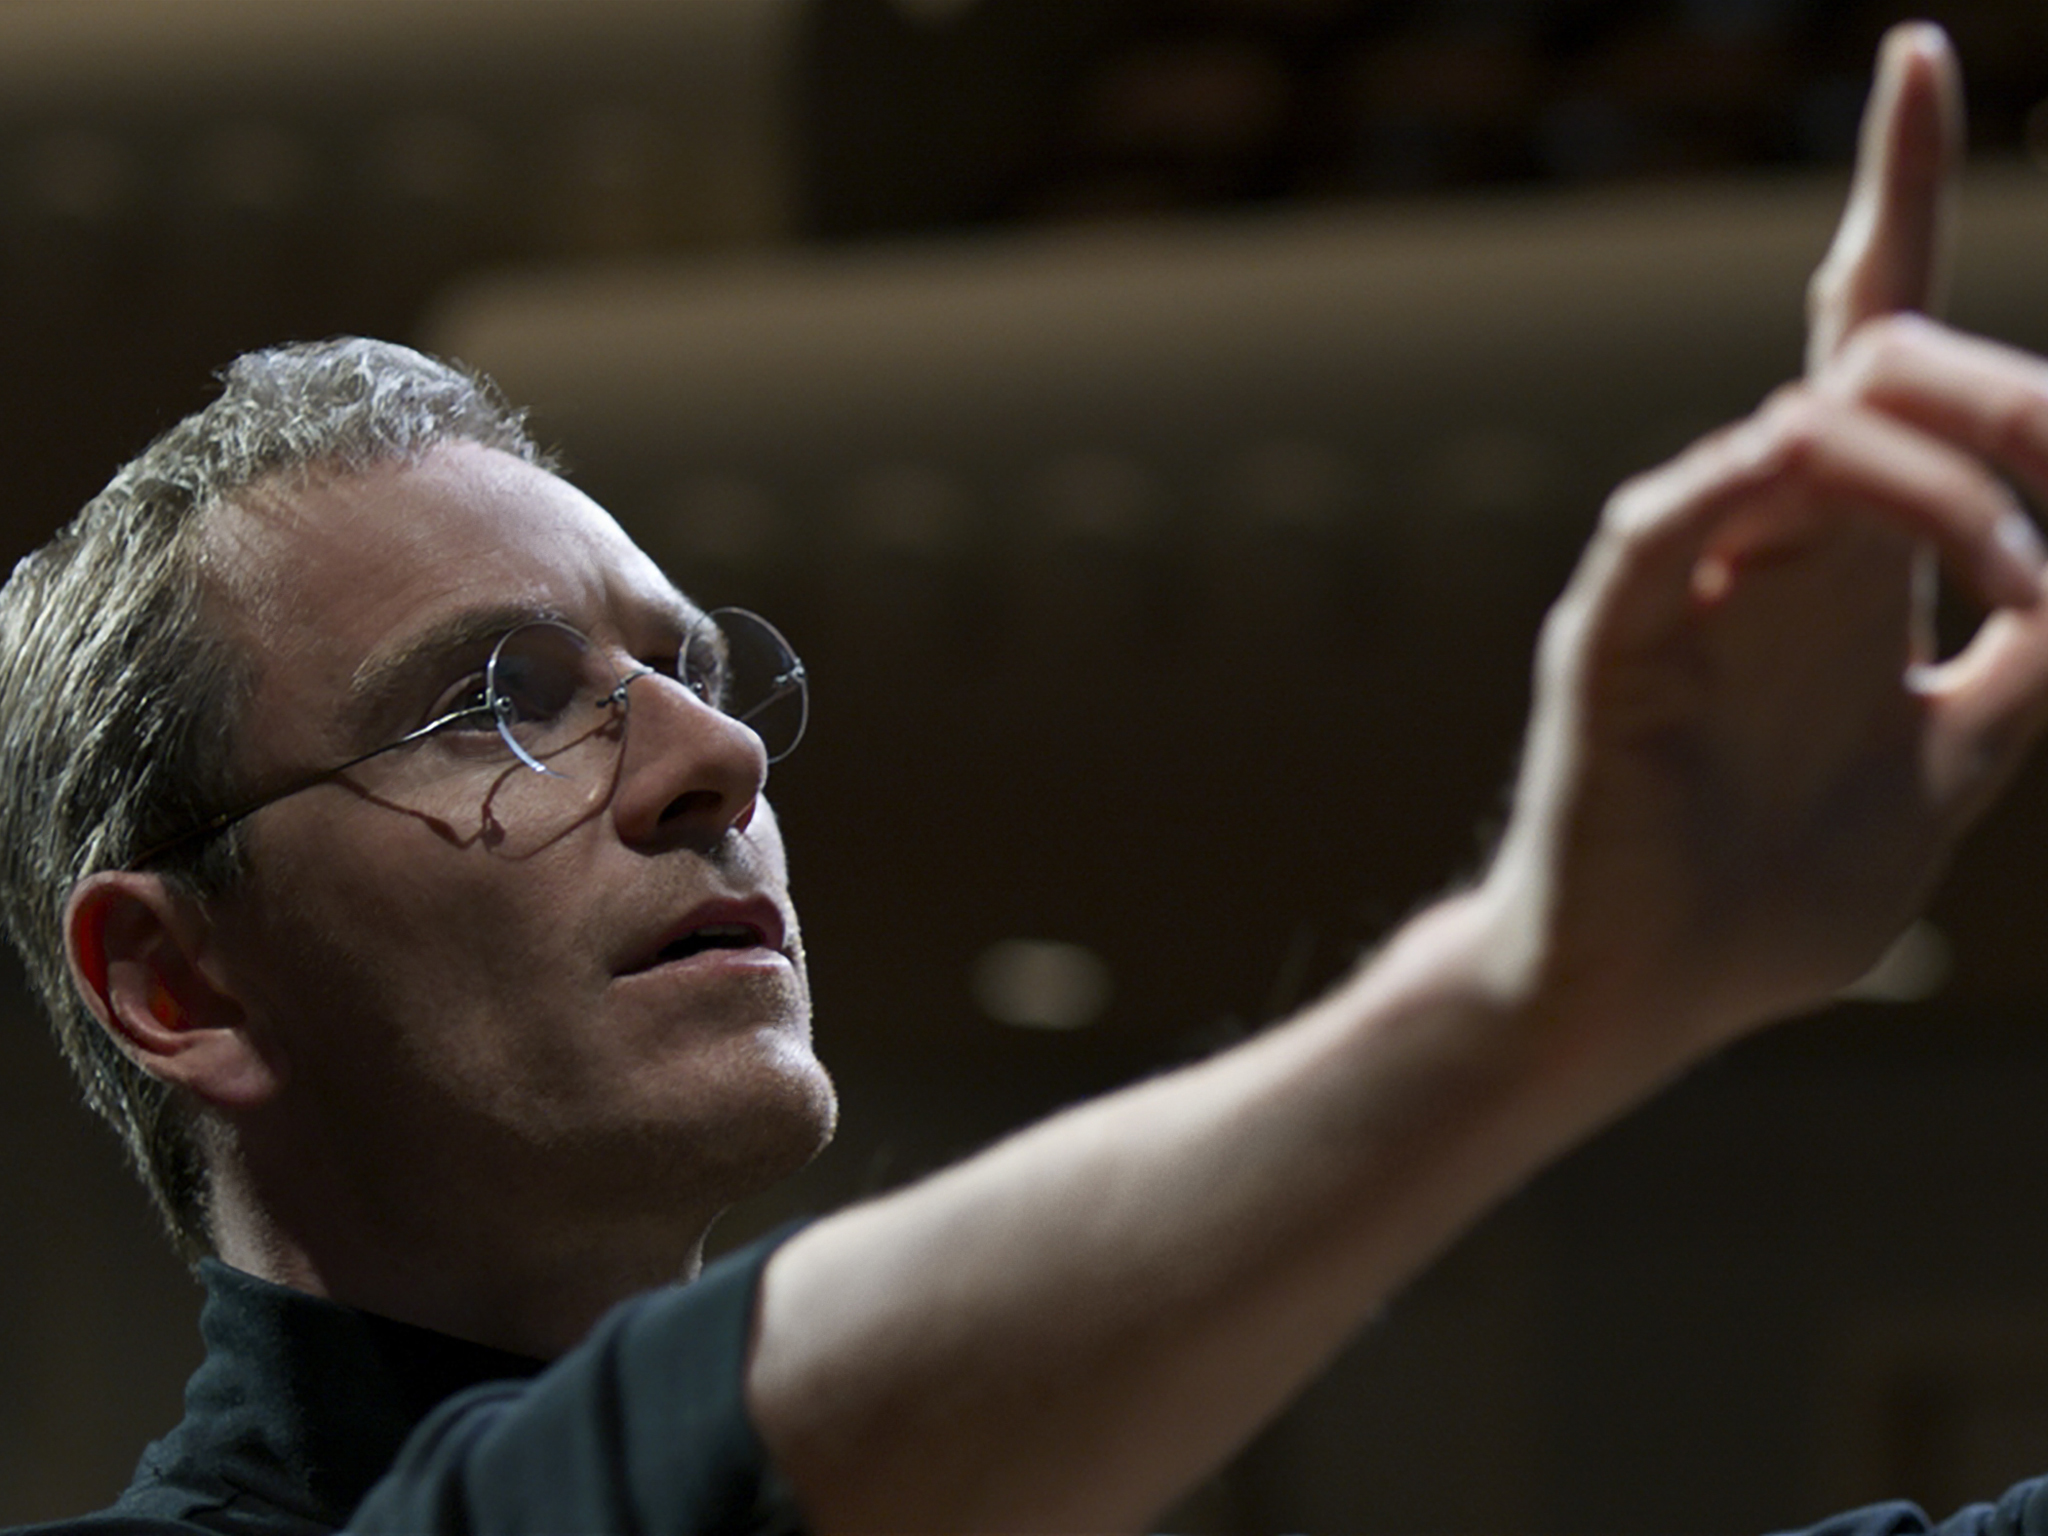 20 films to see in autumn 2015, Steve Jobs